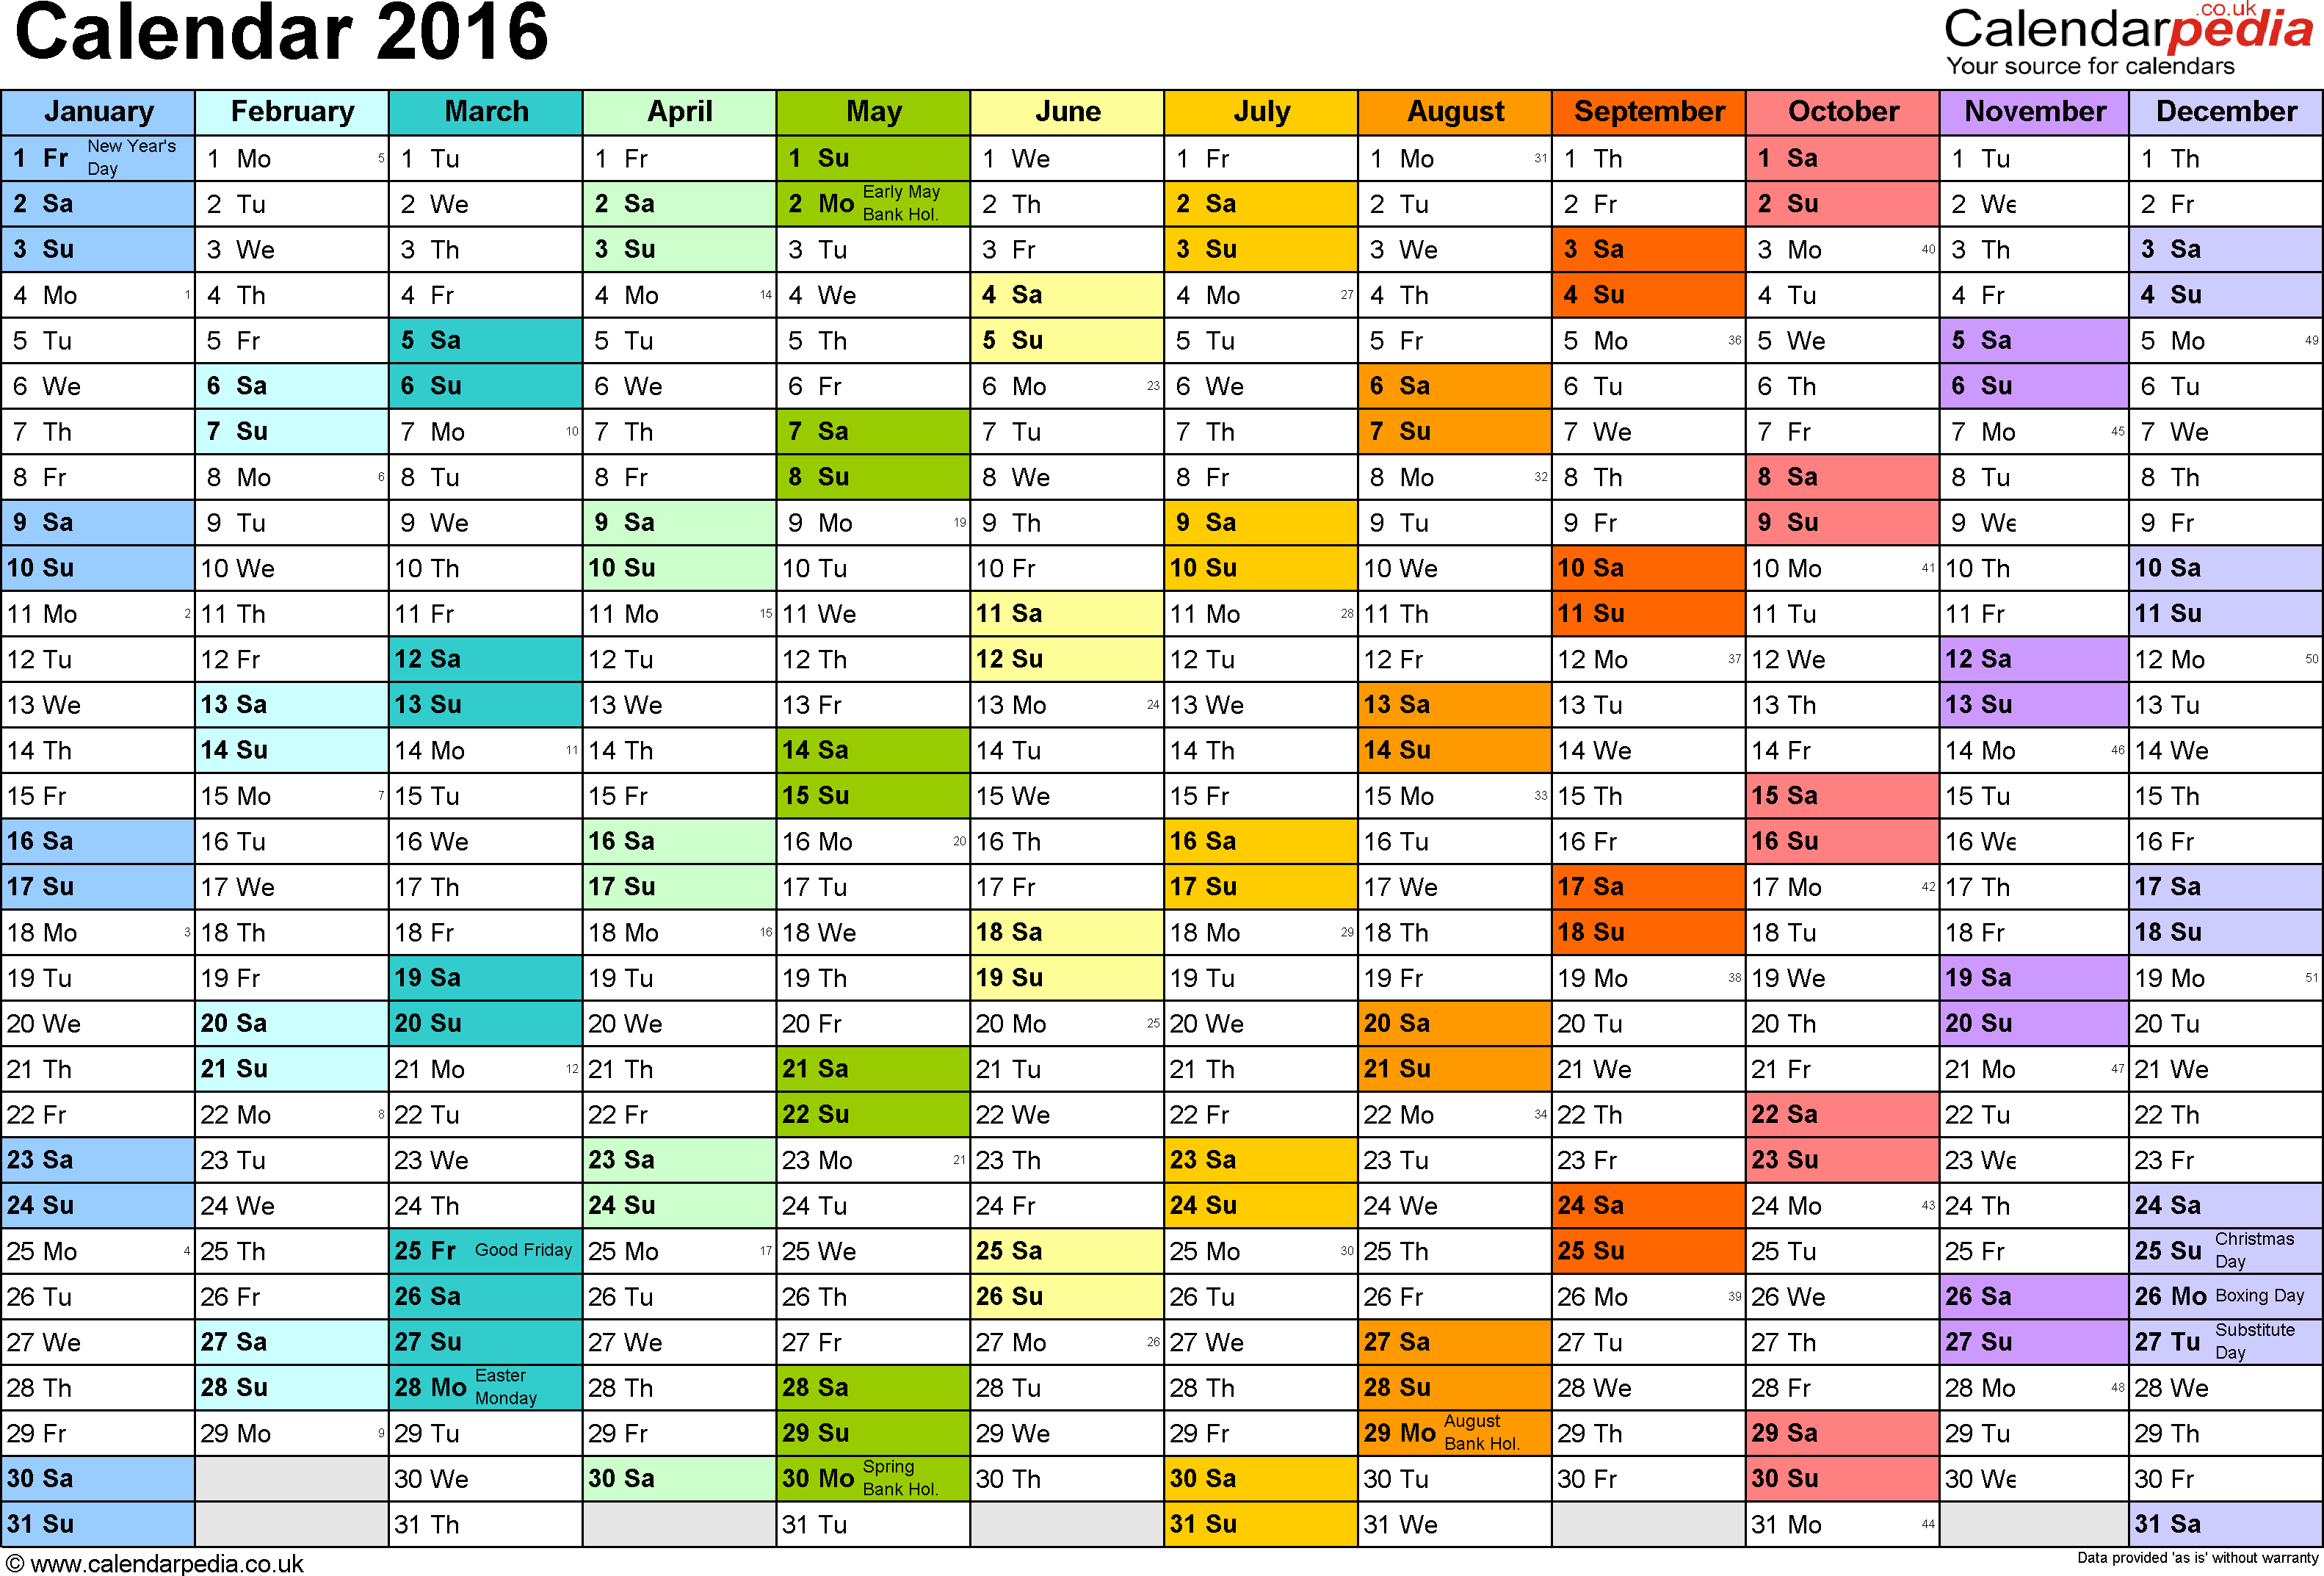 Template 1: Yearly calendar 2016 as Word template, landscape orientation, A4, 1 page, months horizontally, days vertically, in colour, with UK bank holidays and week numbers